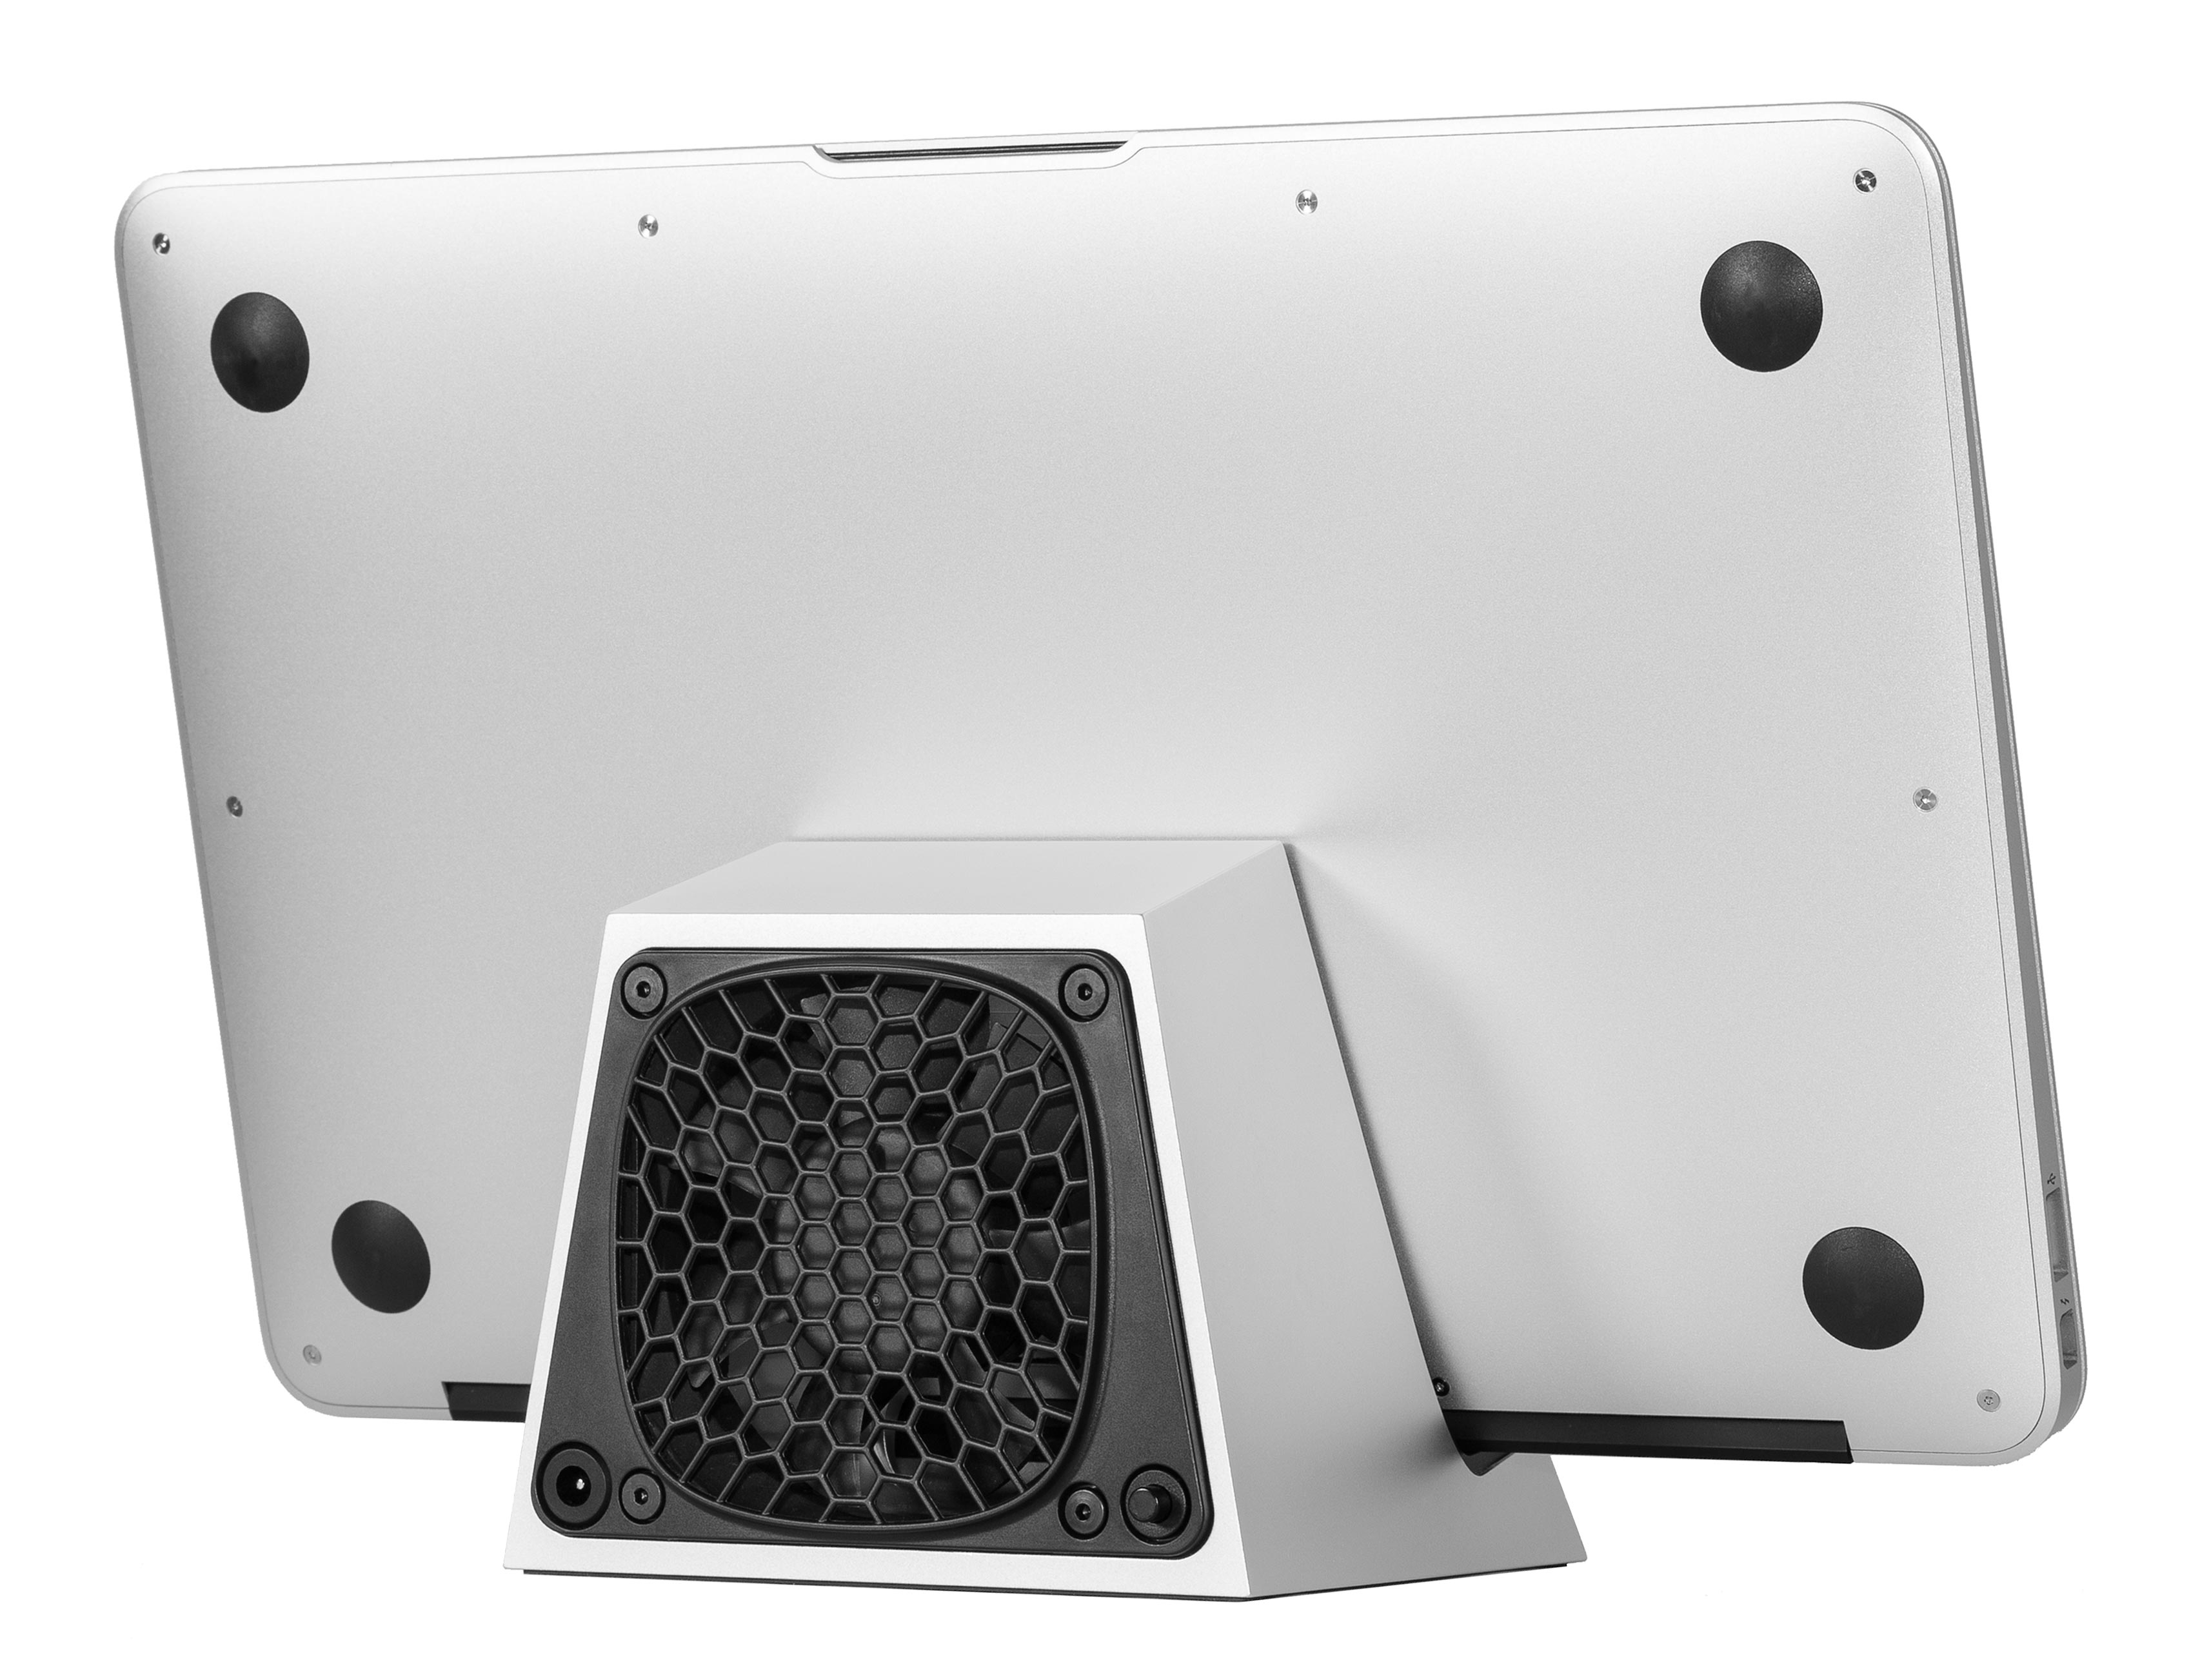 SVALT D Performance Cooling Dock with Apple MacBook Air 11-inch display back view